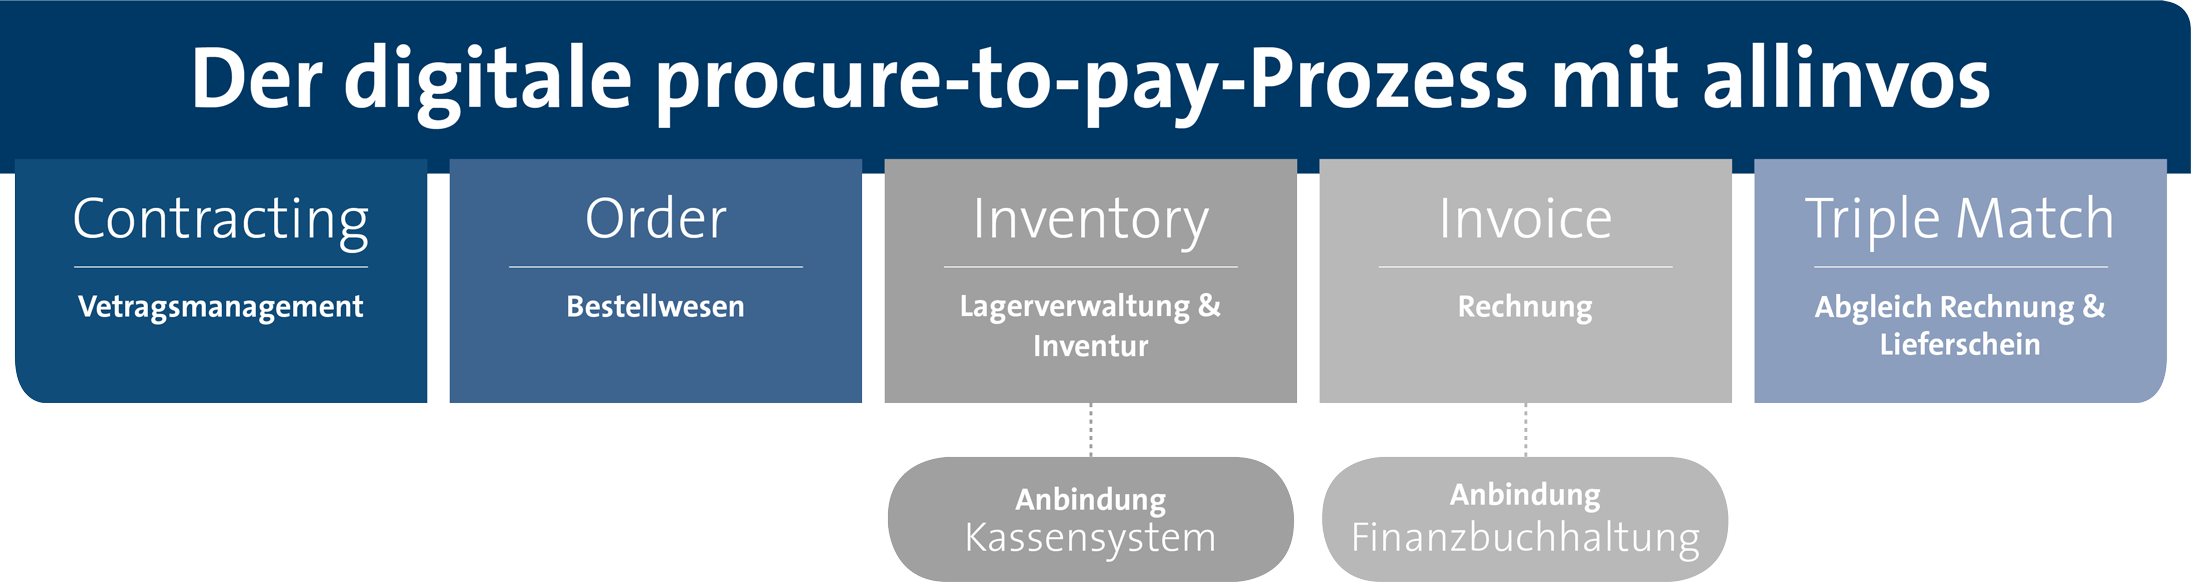 Grafik_procure-to-pay_allinvos-1 About Us